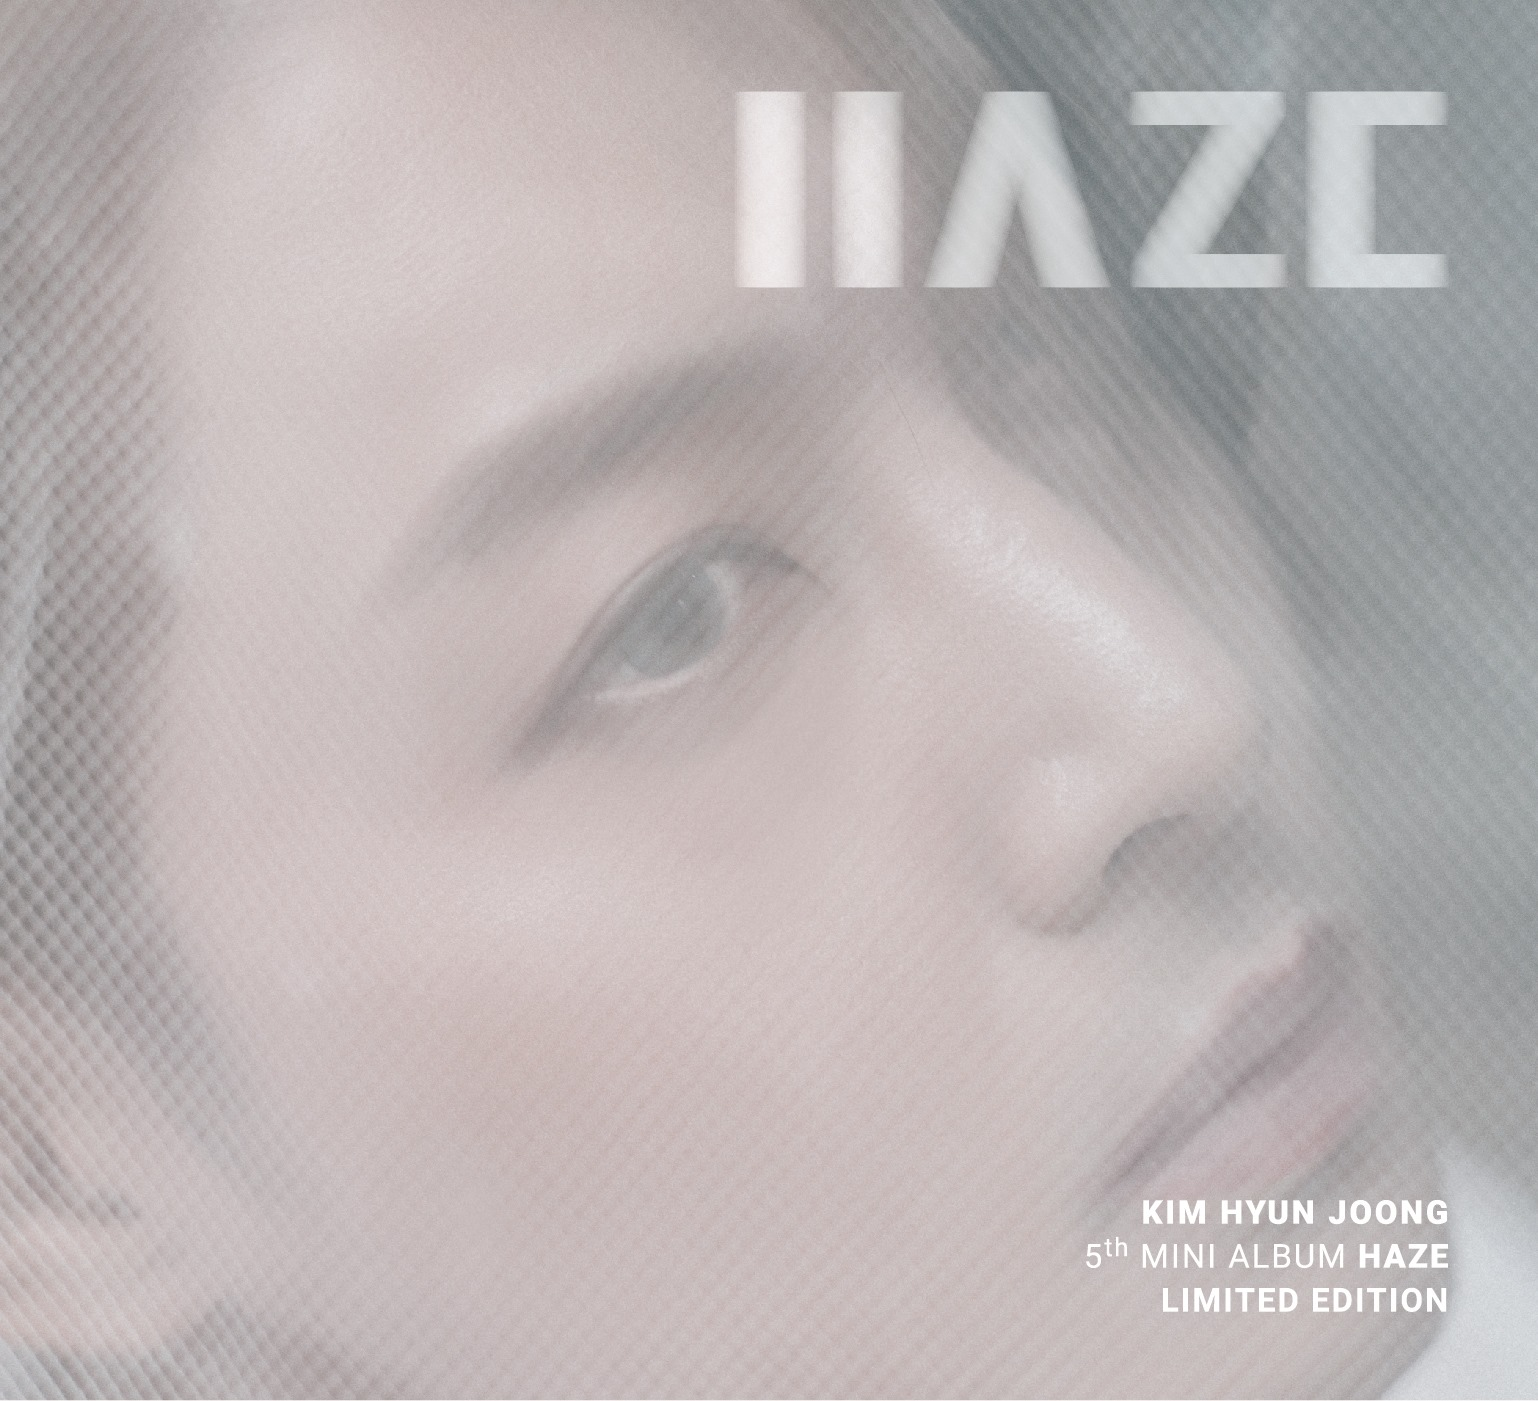 [Notice] Kim Hyun Joong Official Site and Henecia Japan Update - Kim Hyun Joong's 5th mini album 'HAZE' [2017.11.29]